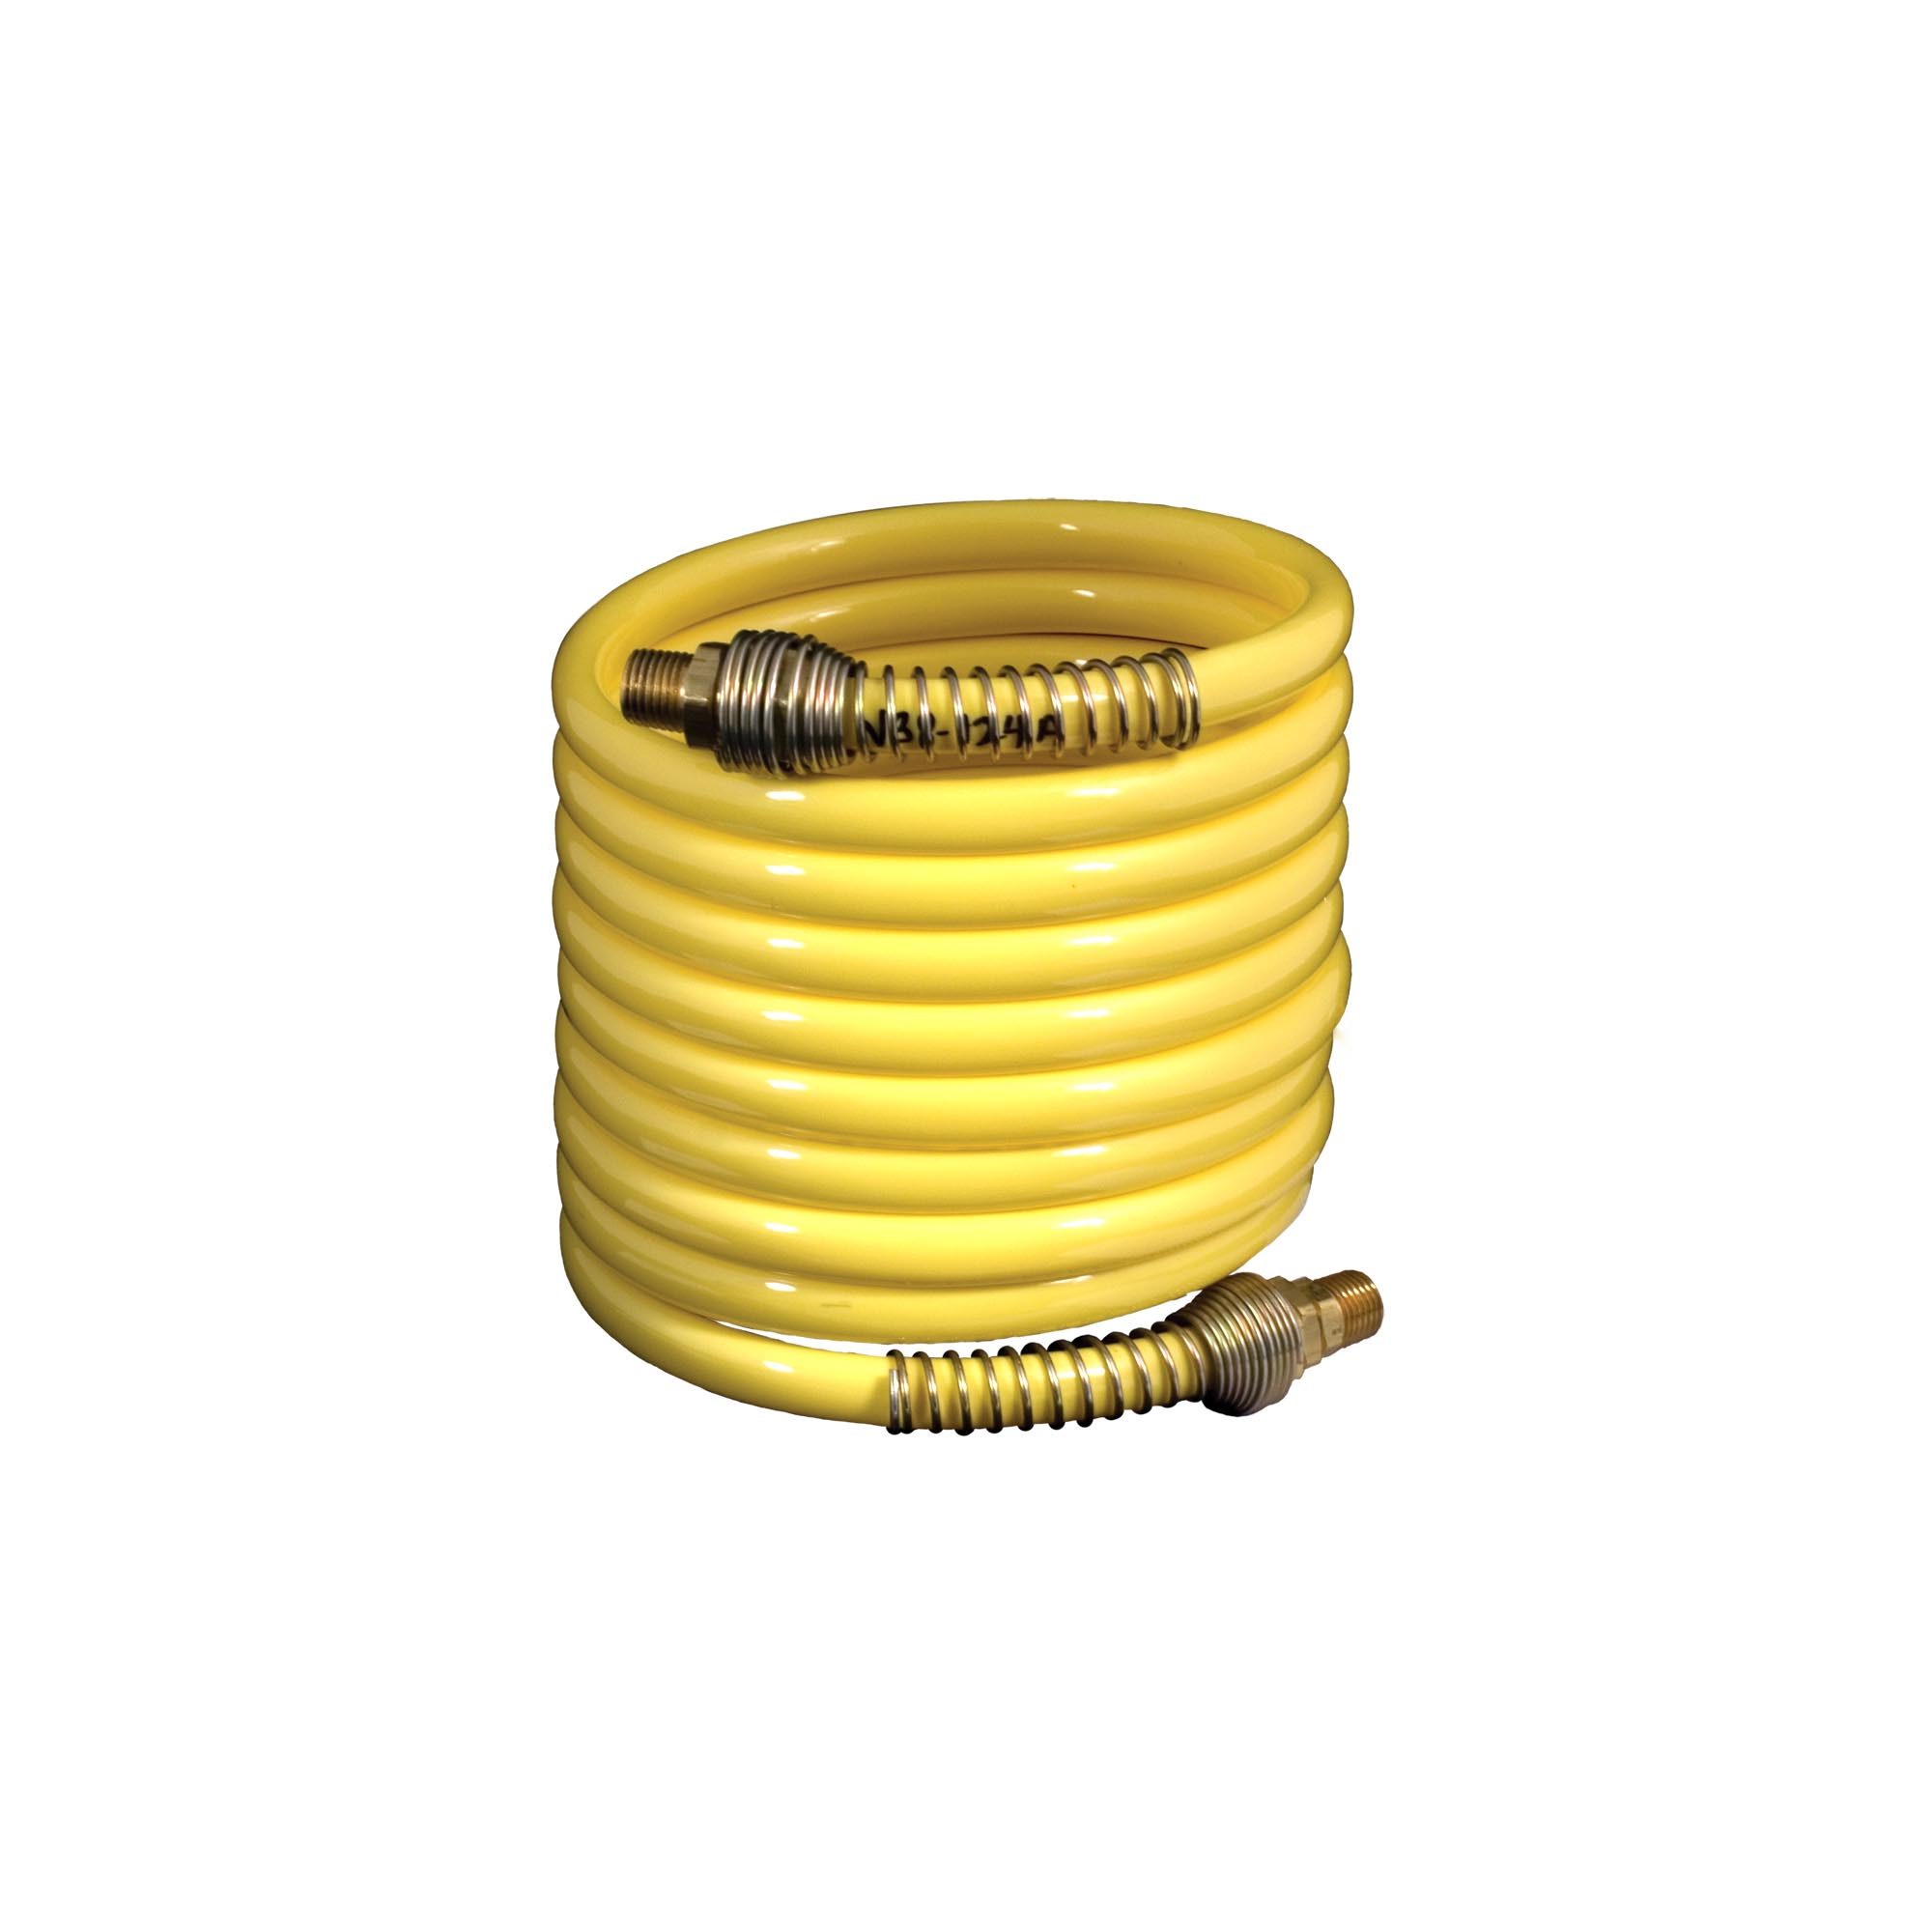 Model 900751 Coiled Hose with Swivel